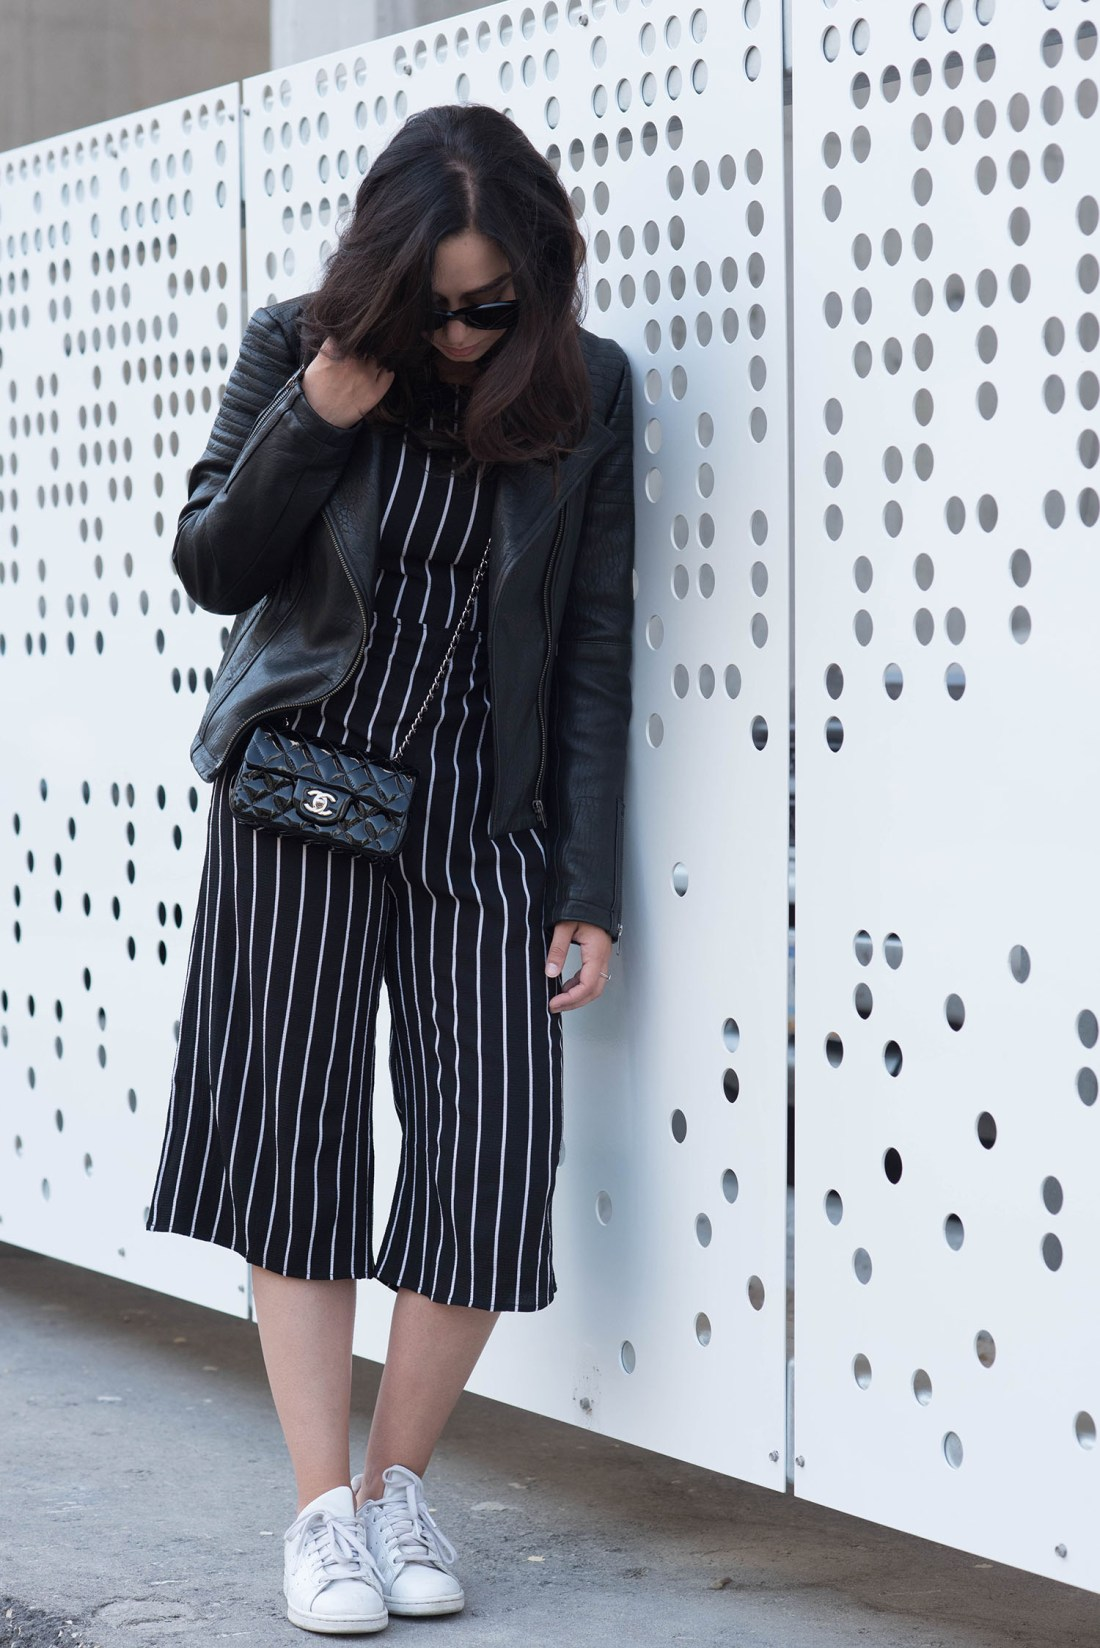 Winnipeg fashion blogger Cee Fardoe of Coco & Vera wears a black striped Missy Empire jumpsuit, white Adidas Stan Smith sneakers and Celine Audrey sunglasses